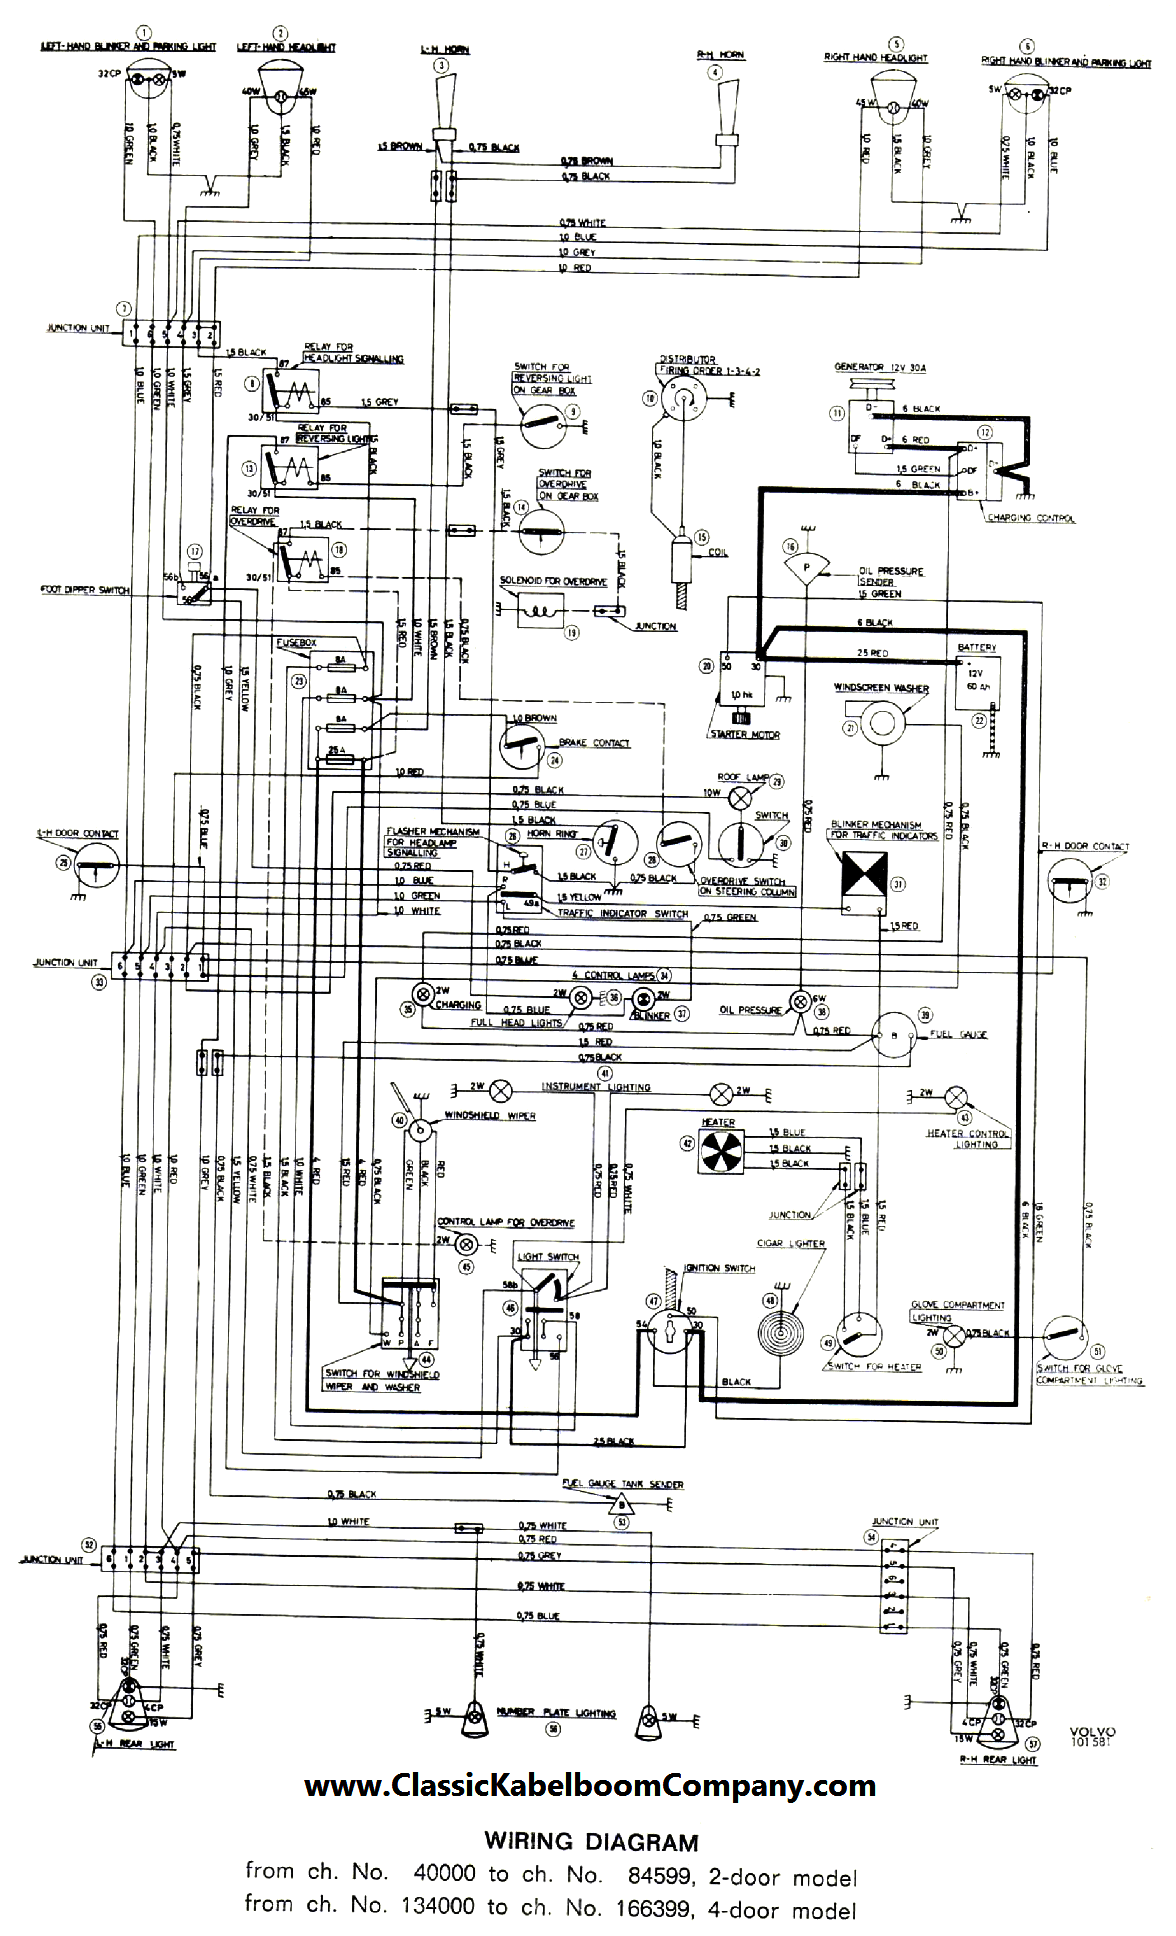 volvo semi truck wiring diagram kia soul vnl diagrams engine